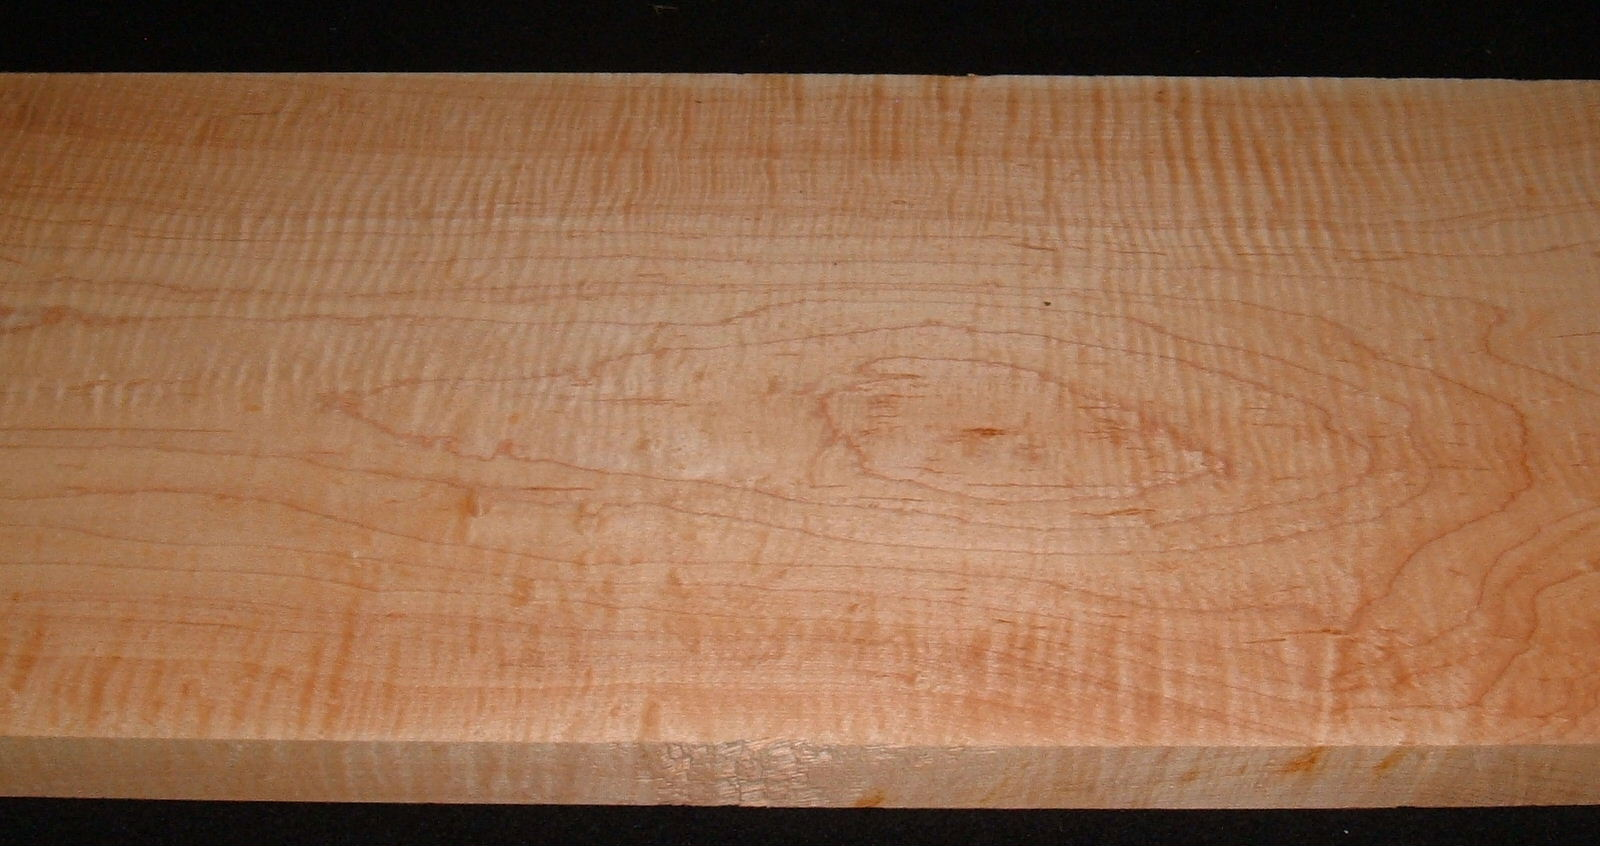 S-2493,11-1/16x10x24, Curly Hard Tiger Maple